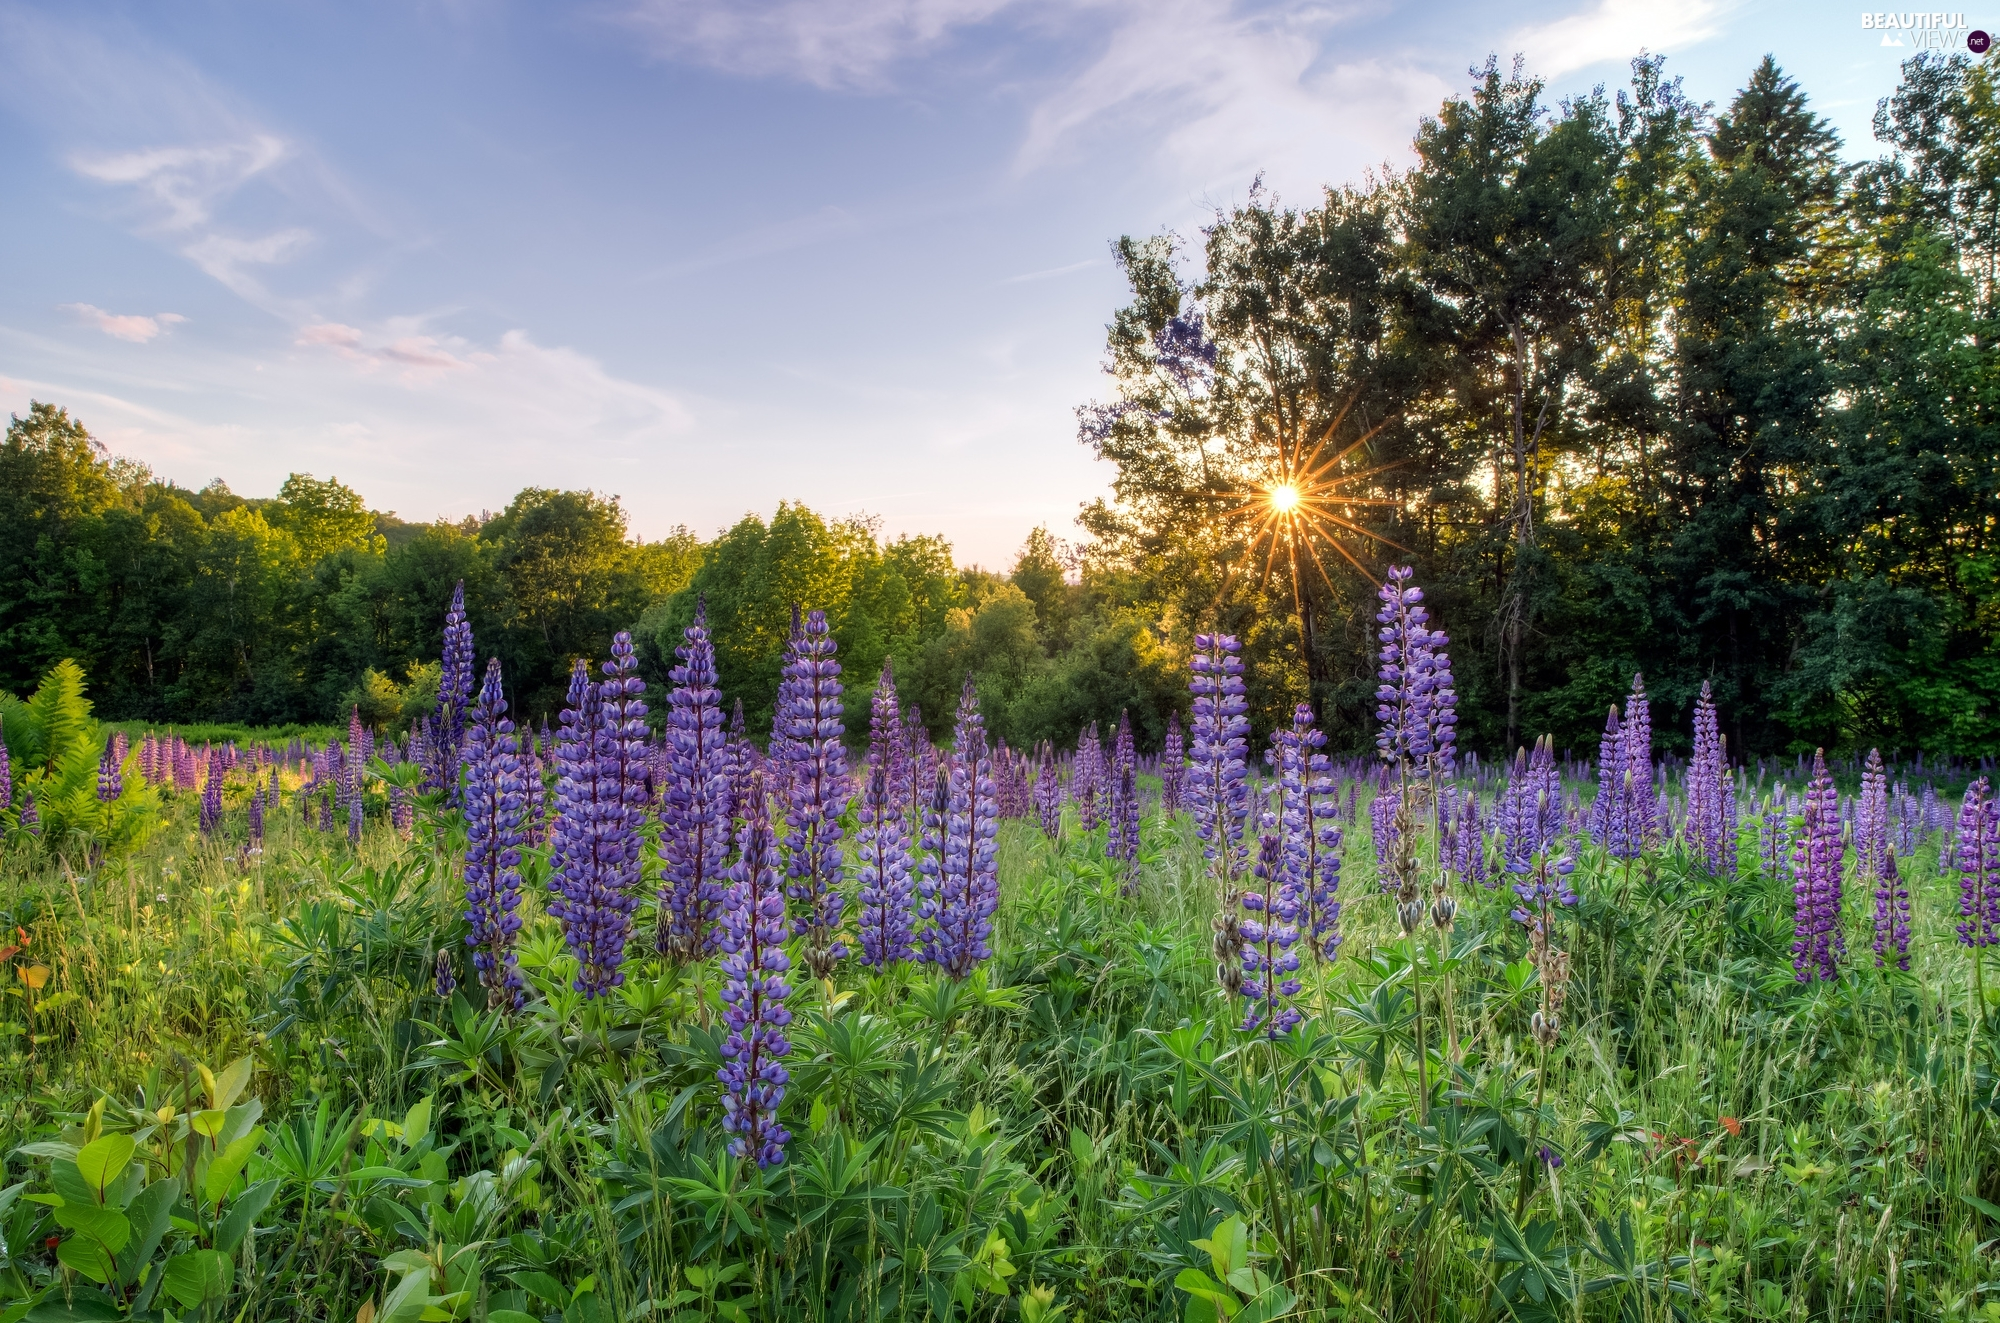 viewes, Meadow, VEGETATION, rays of the Sun, lupine, trees